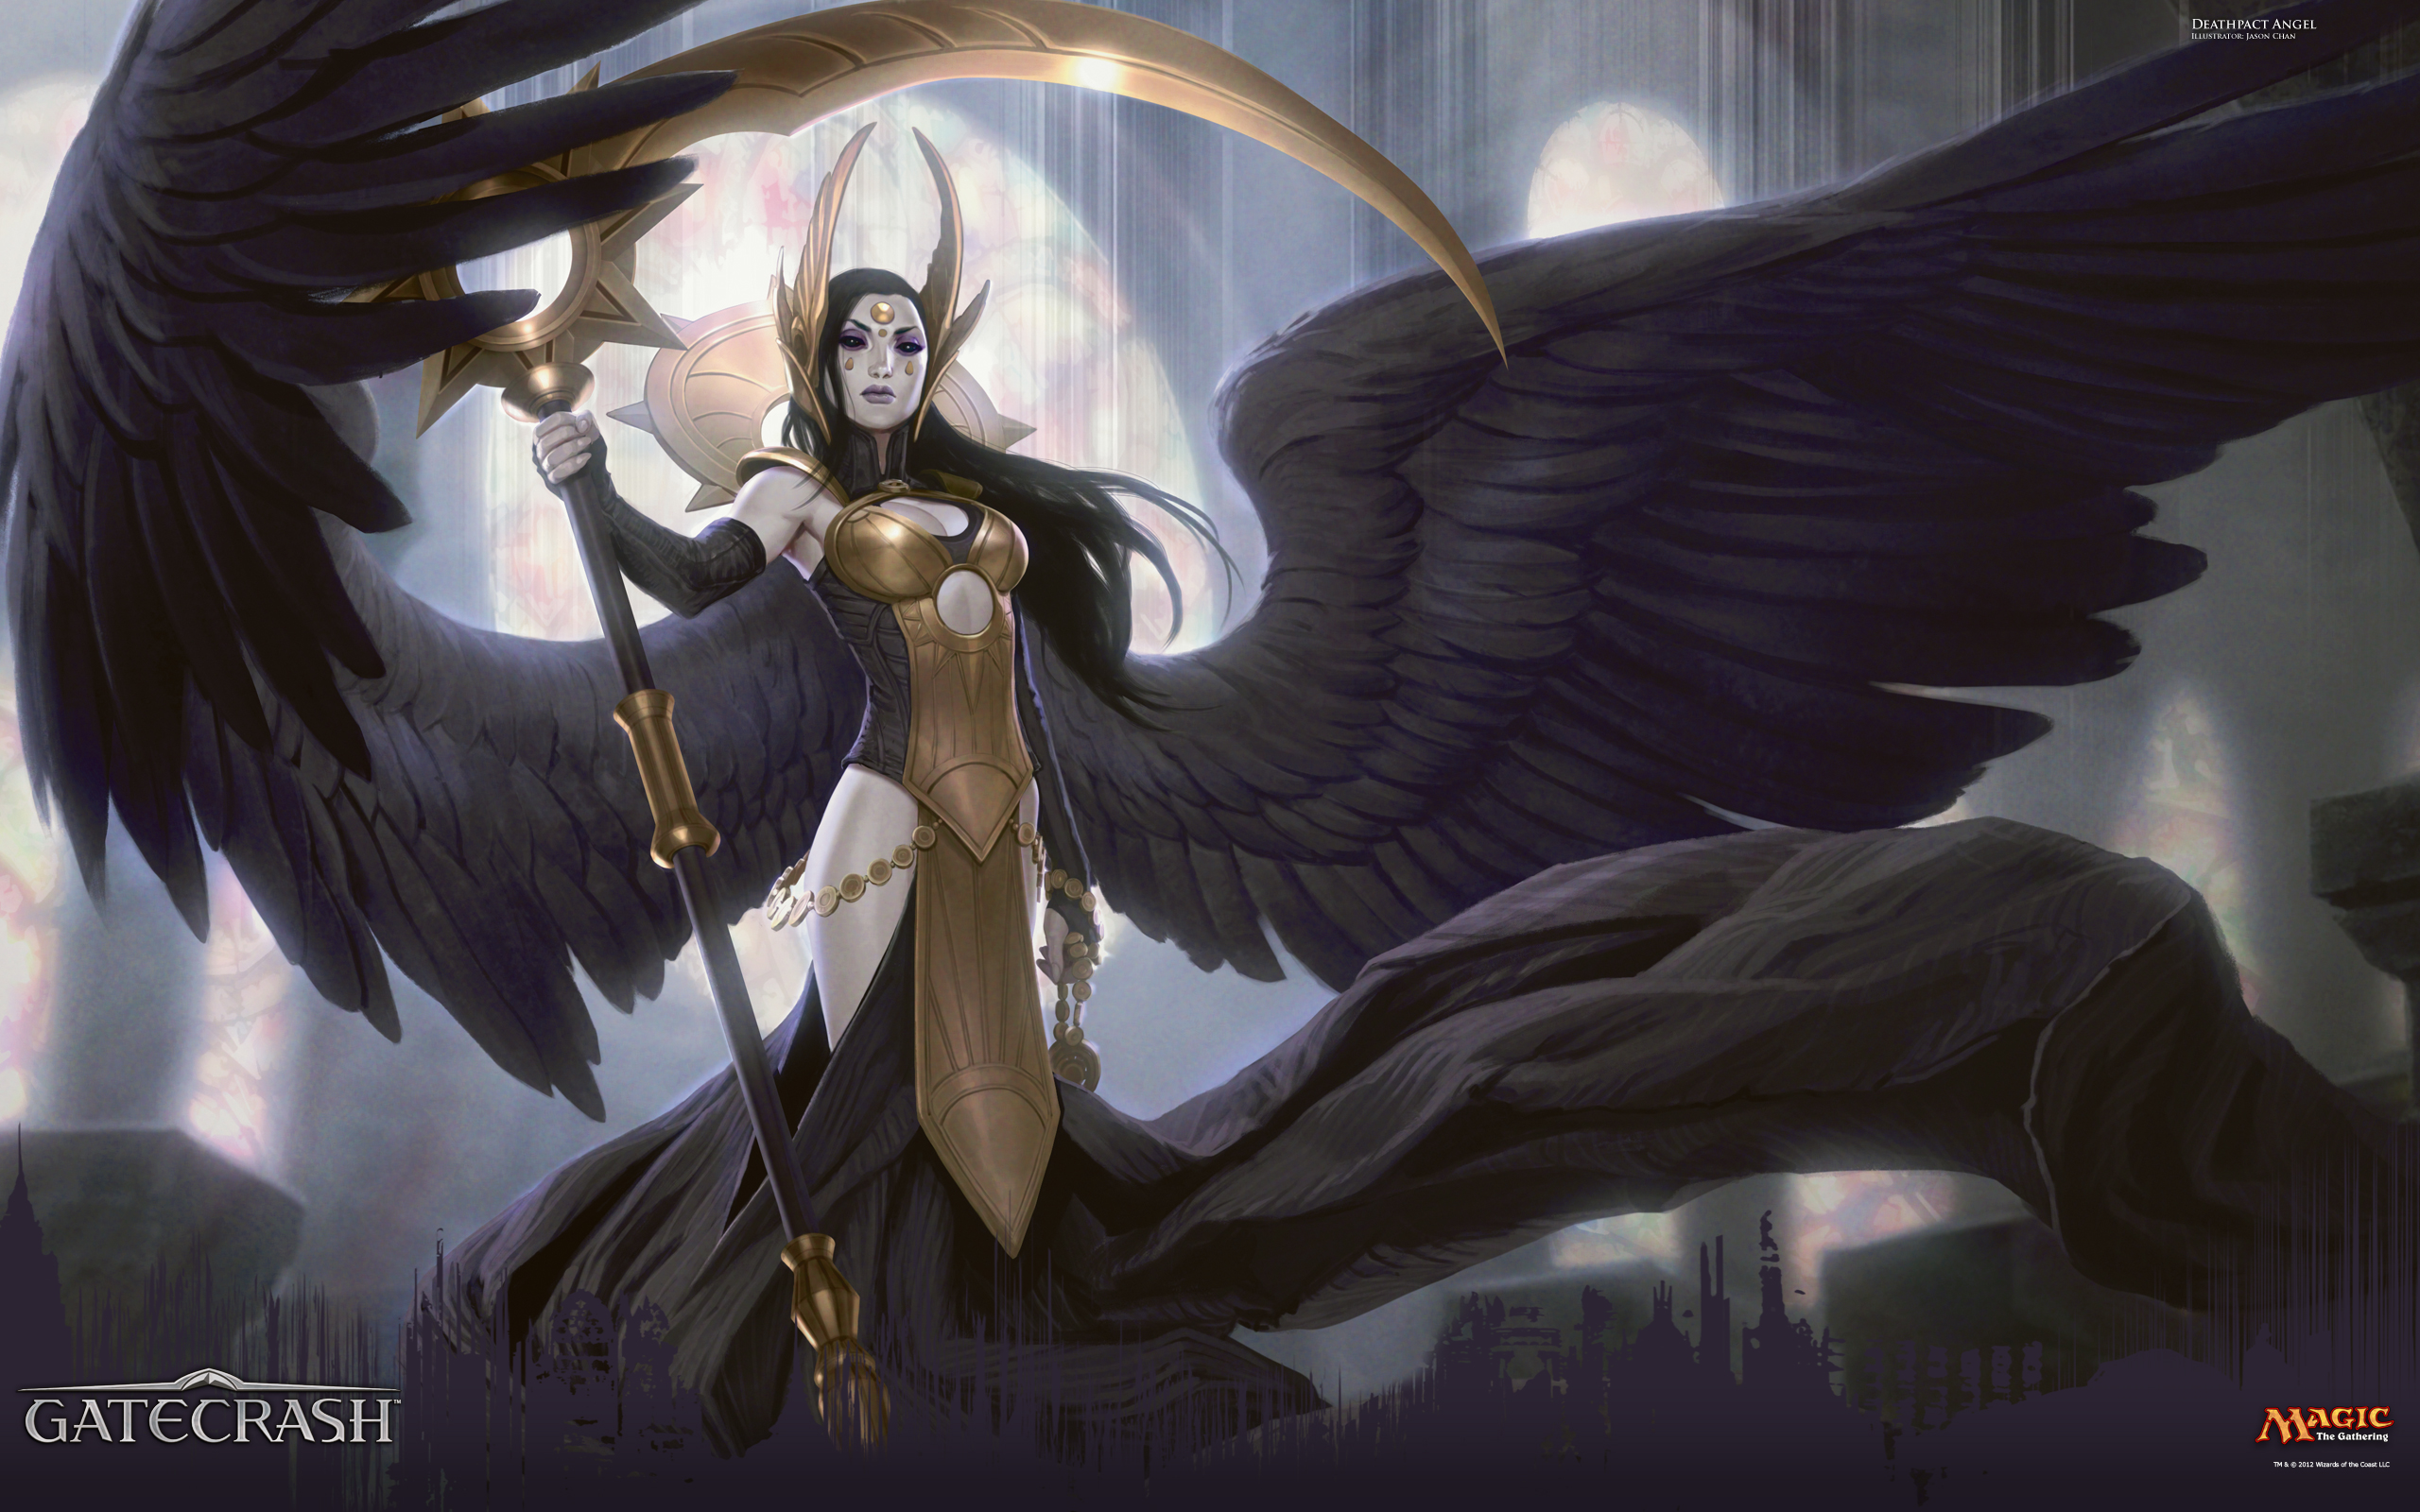 Wallpaper of the Week: Deathpact Angel